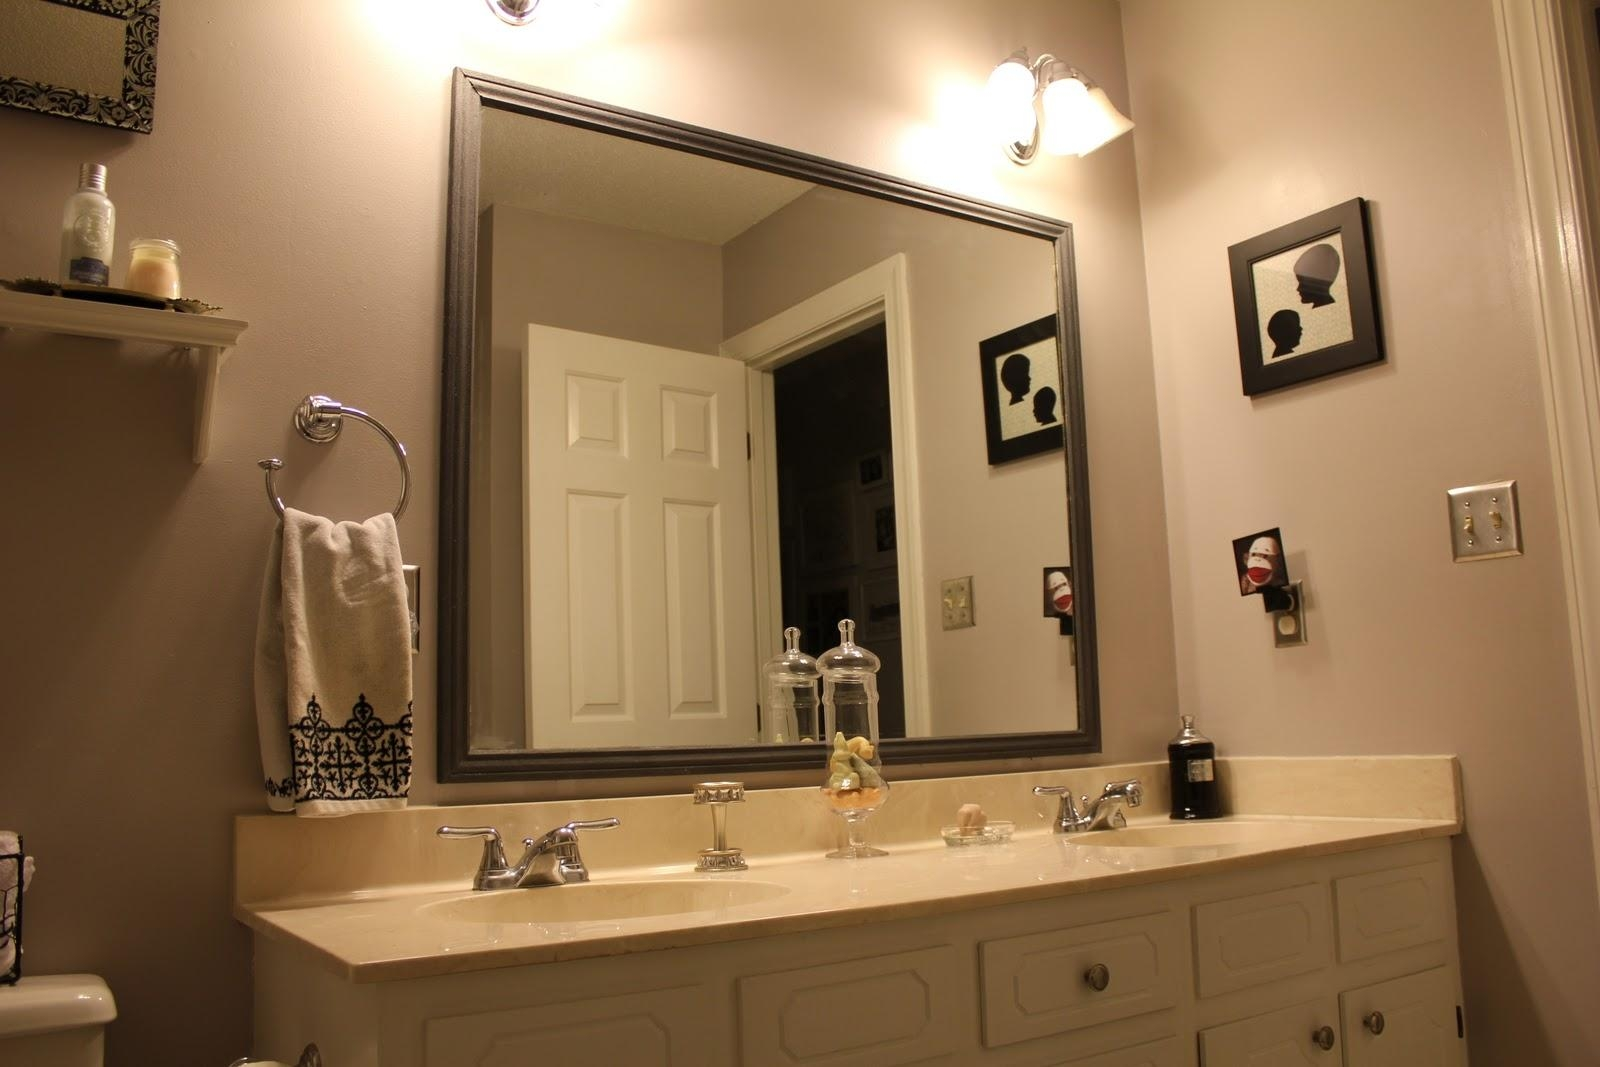 Awesome Wrought Iron Framed Bathroom Mirrors 42 About Remodel With Throughout Wrought Iron Bathroom Mirrors (Image 4 of 20)